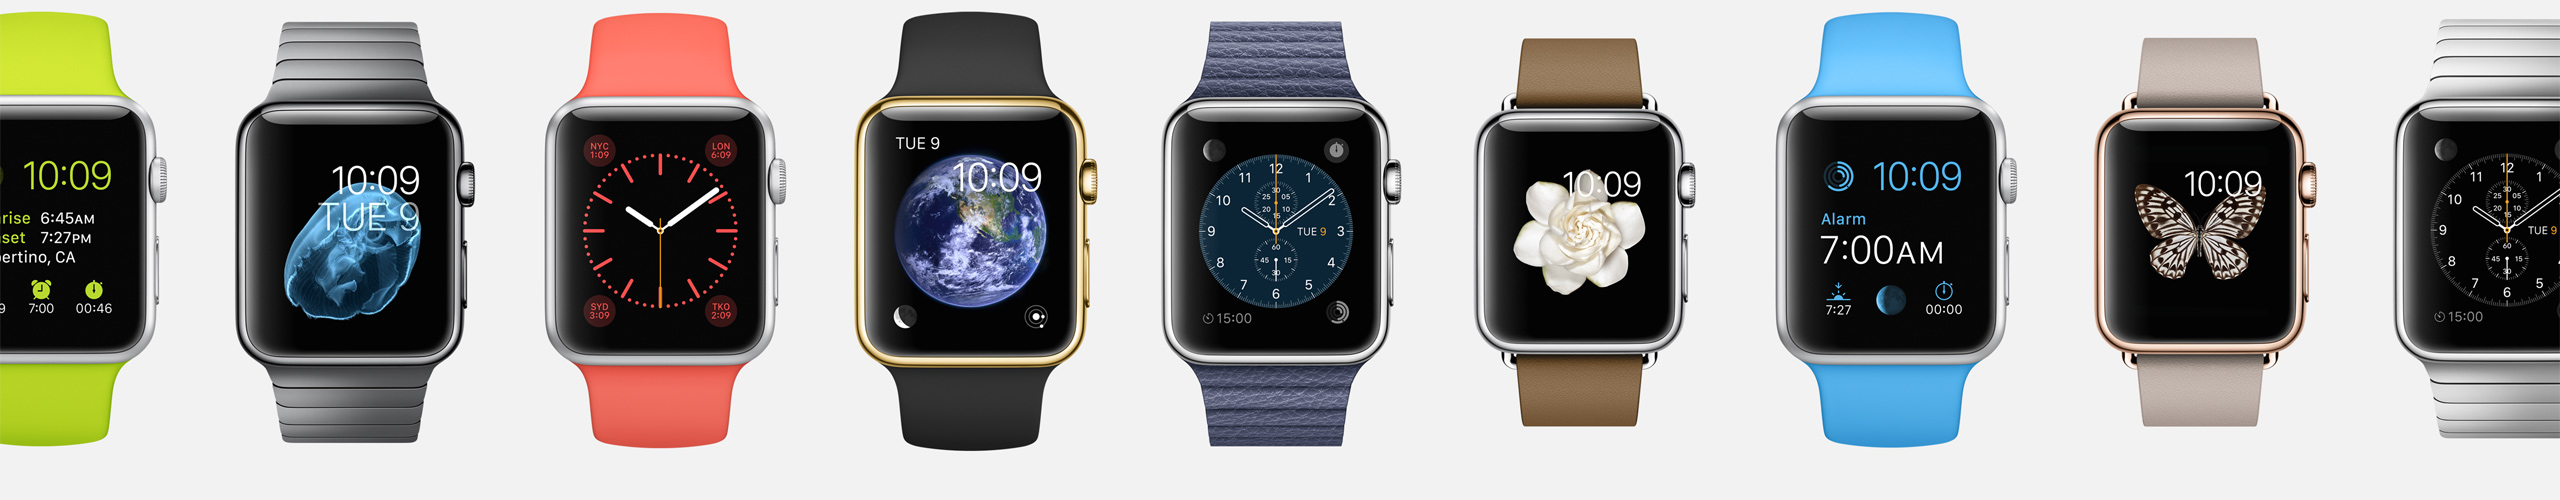 Apple Watch customizability